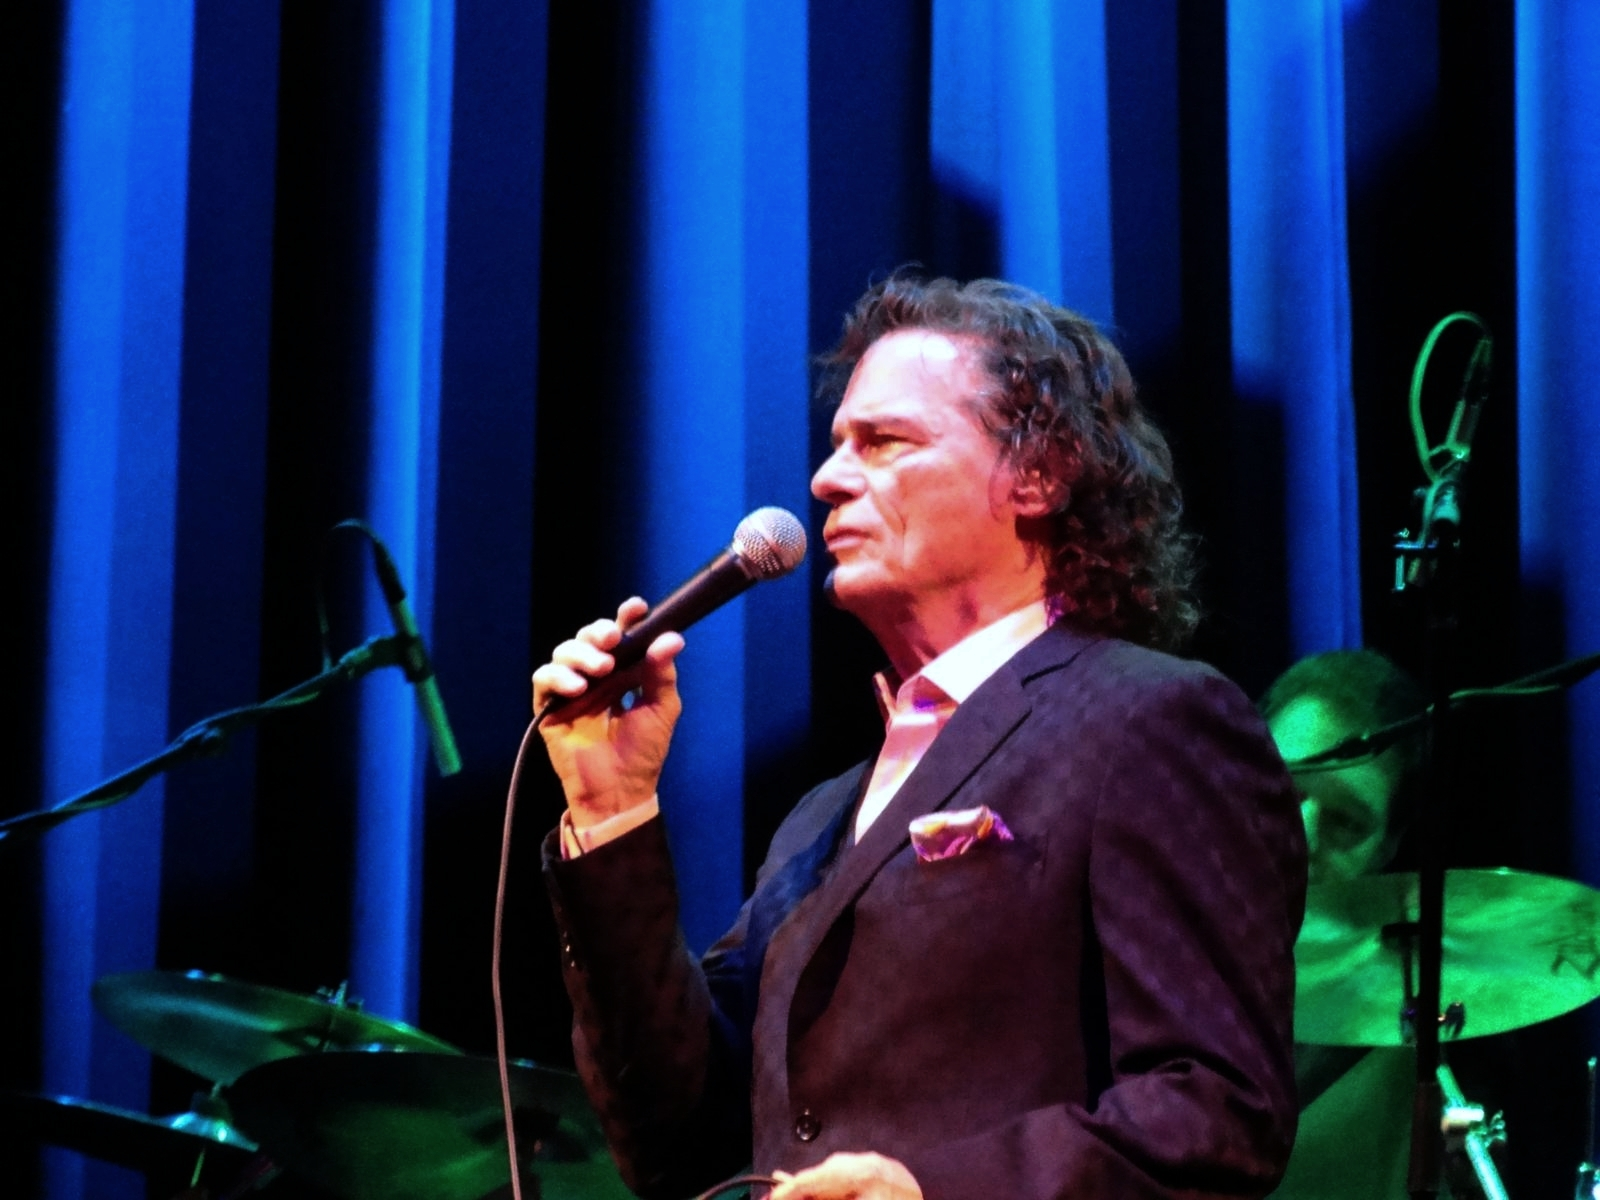 File:B J Thomas Dec 2012.jpg - Wikipedia